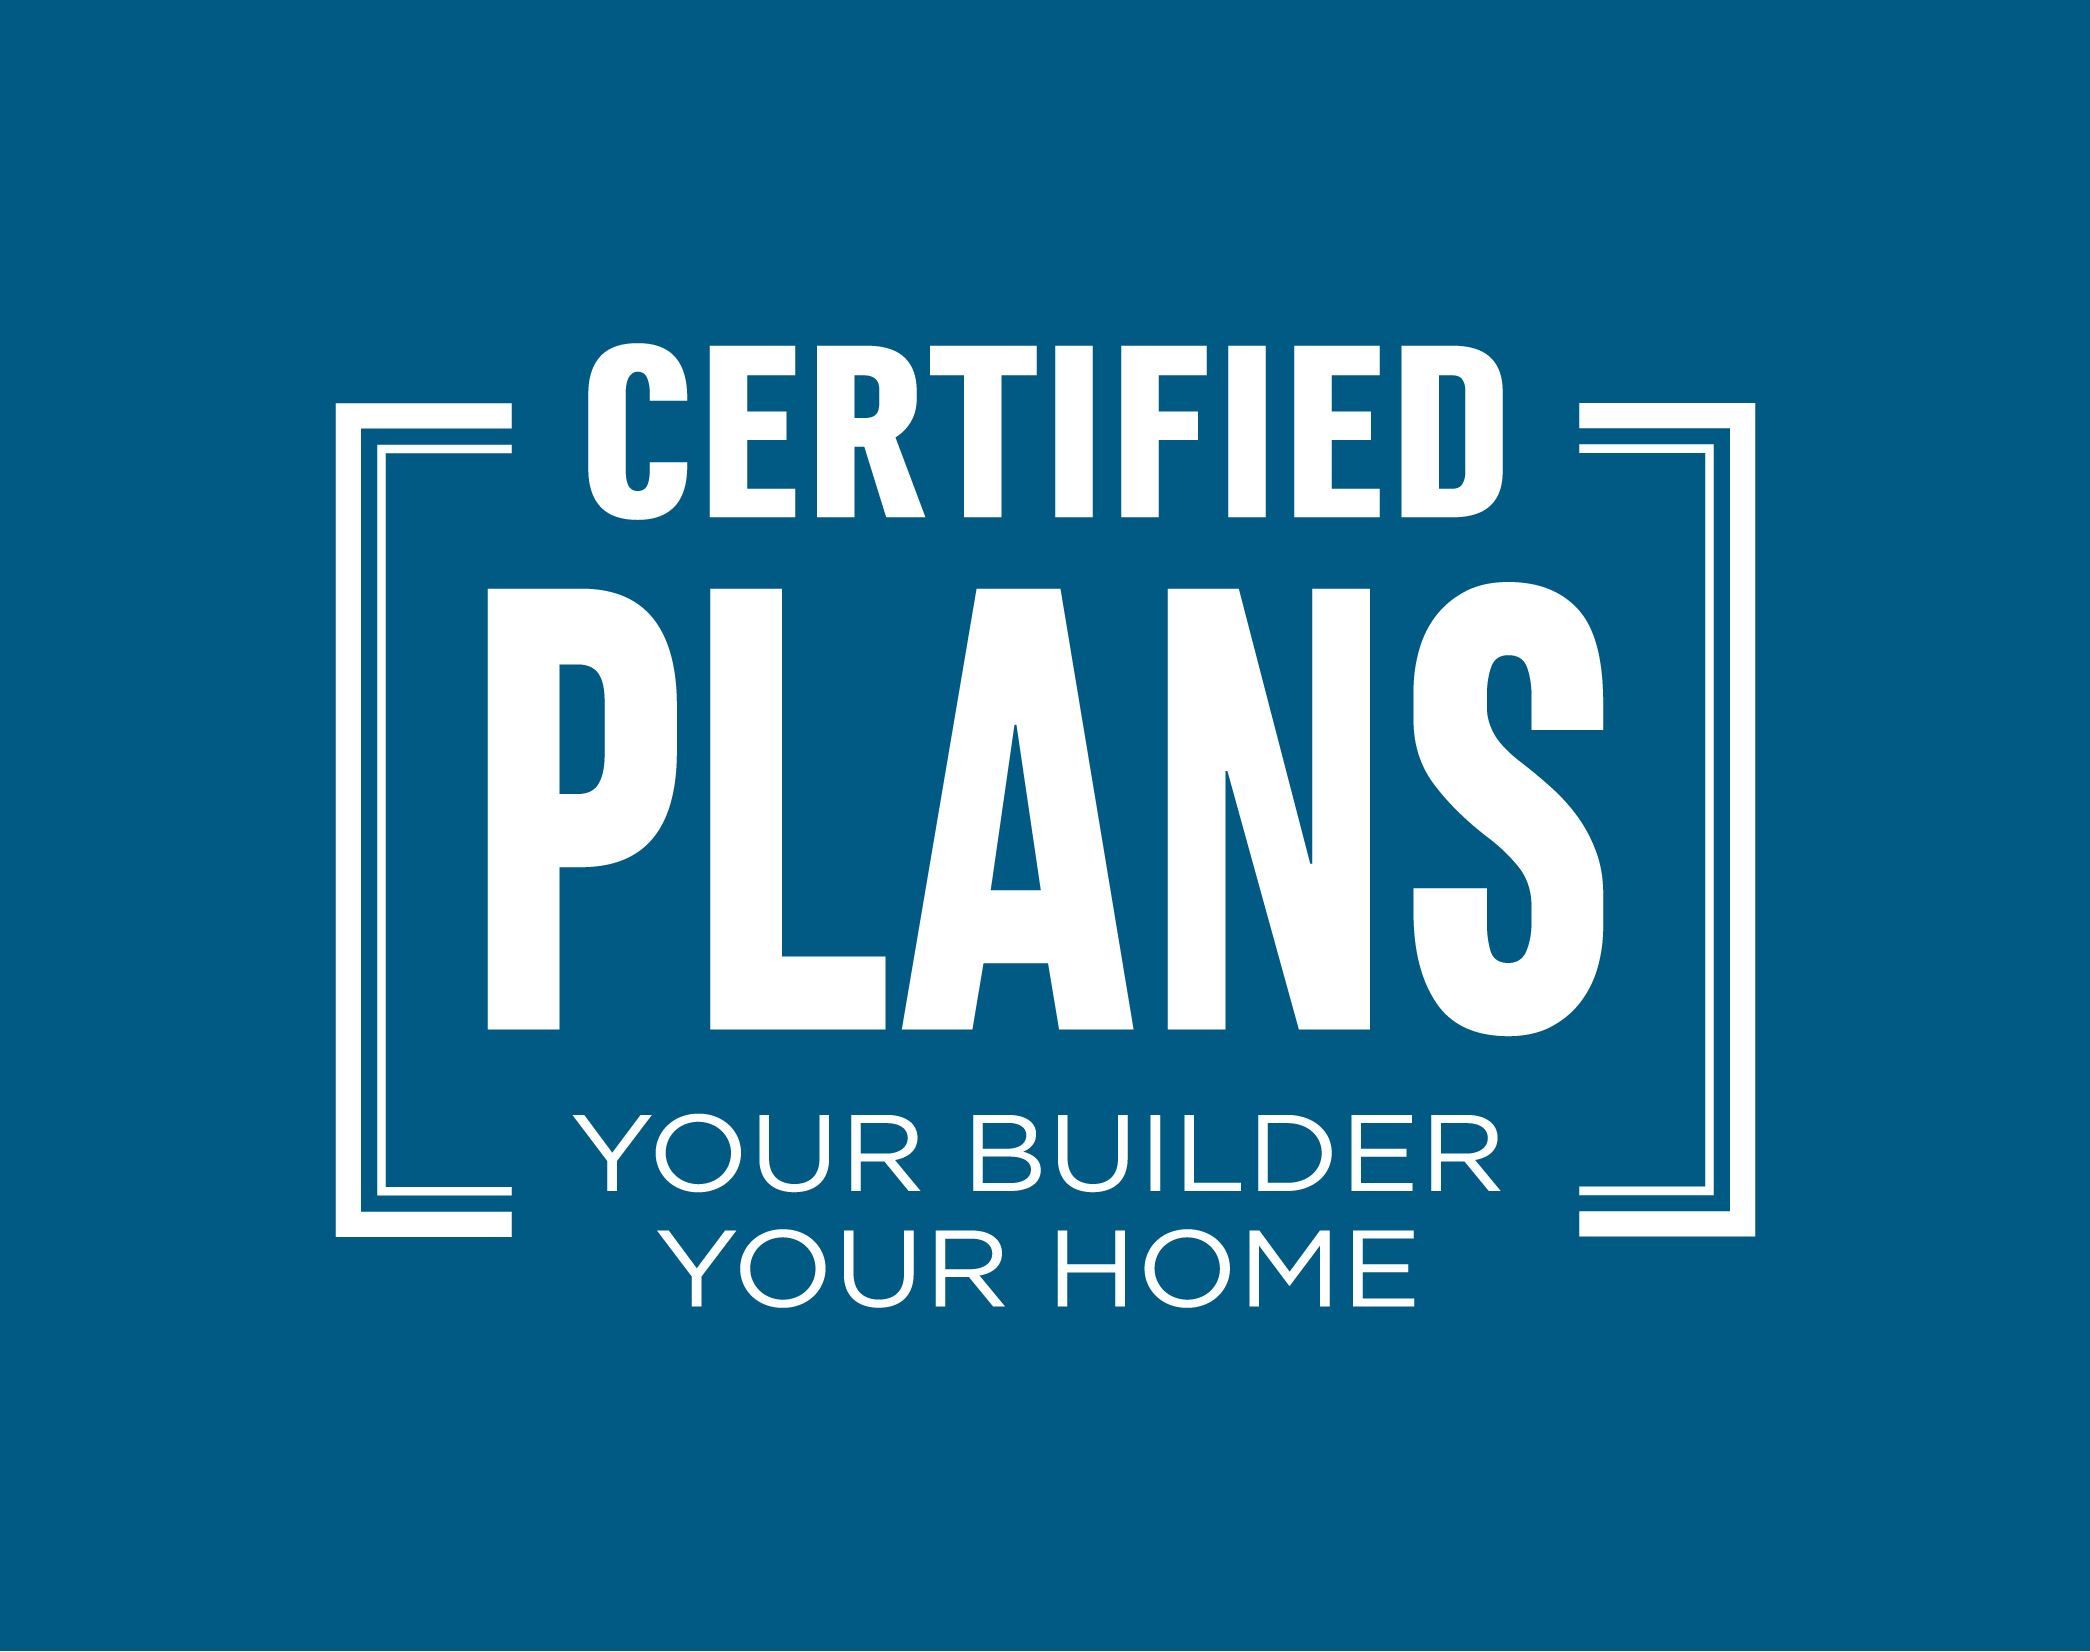 ABC Homes Certified Plans